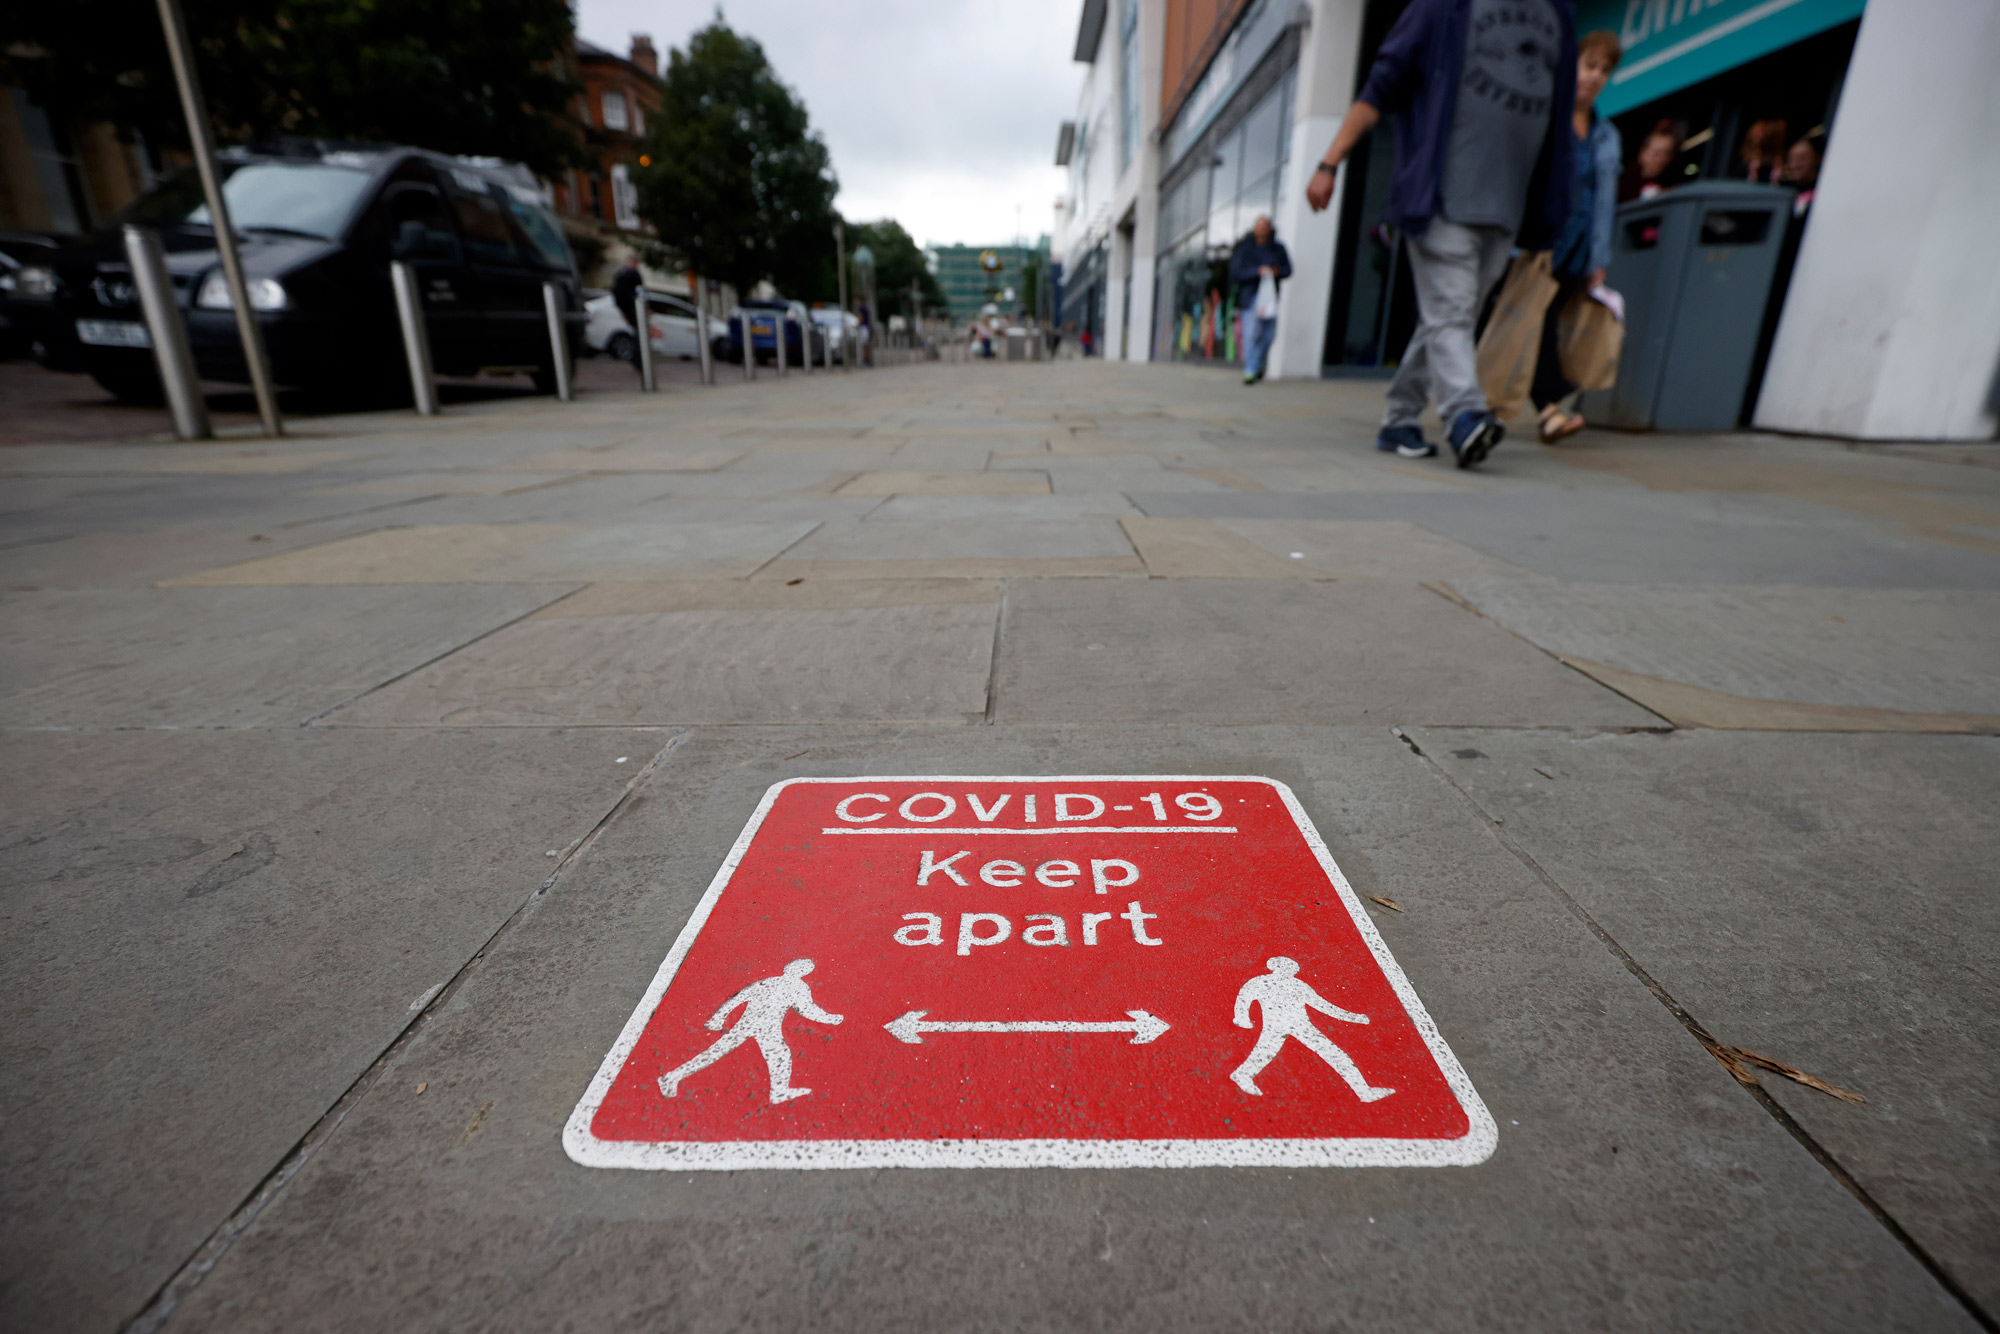 Social distancing signs are seen in Blackburn town center on July 17 in Blackburn, England.